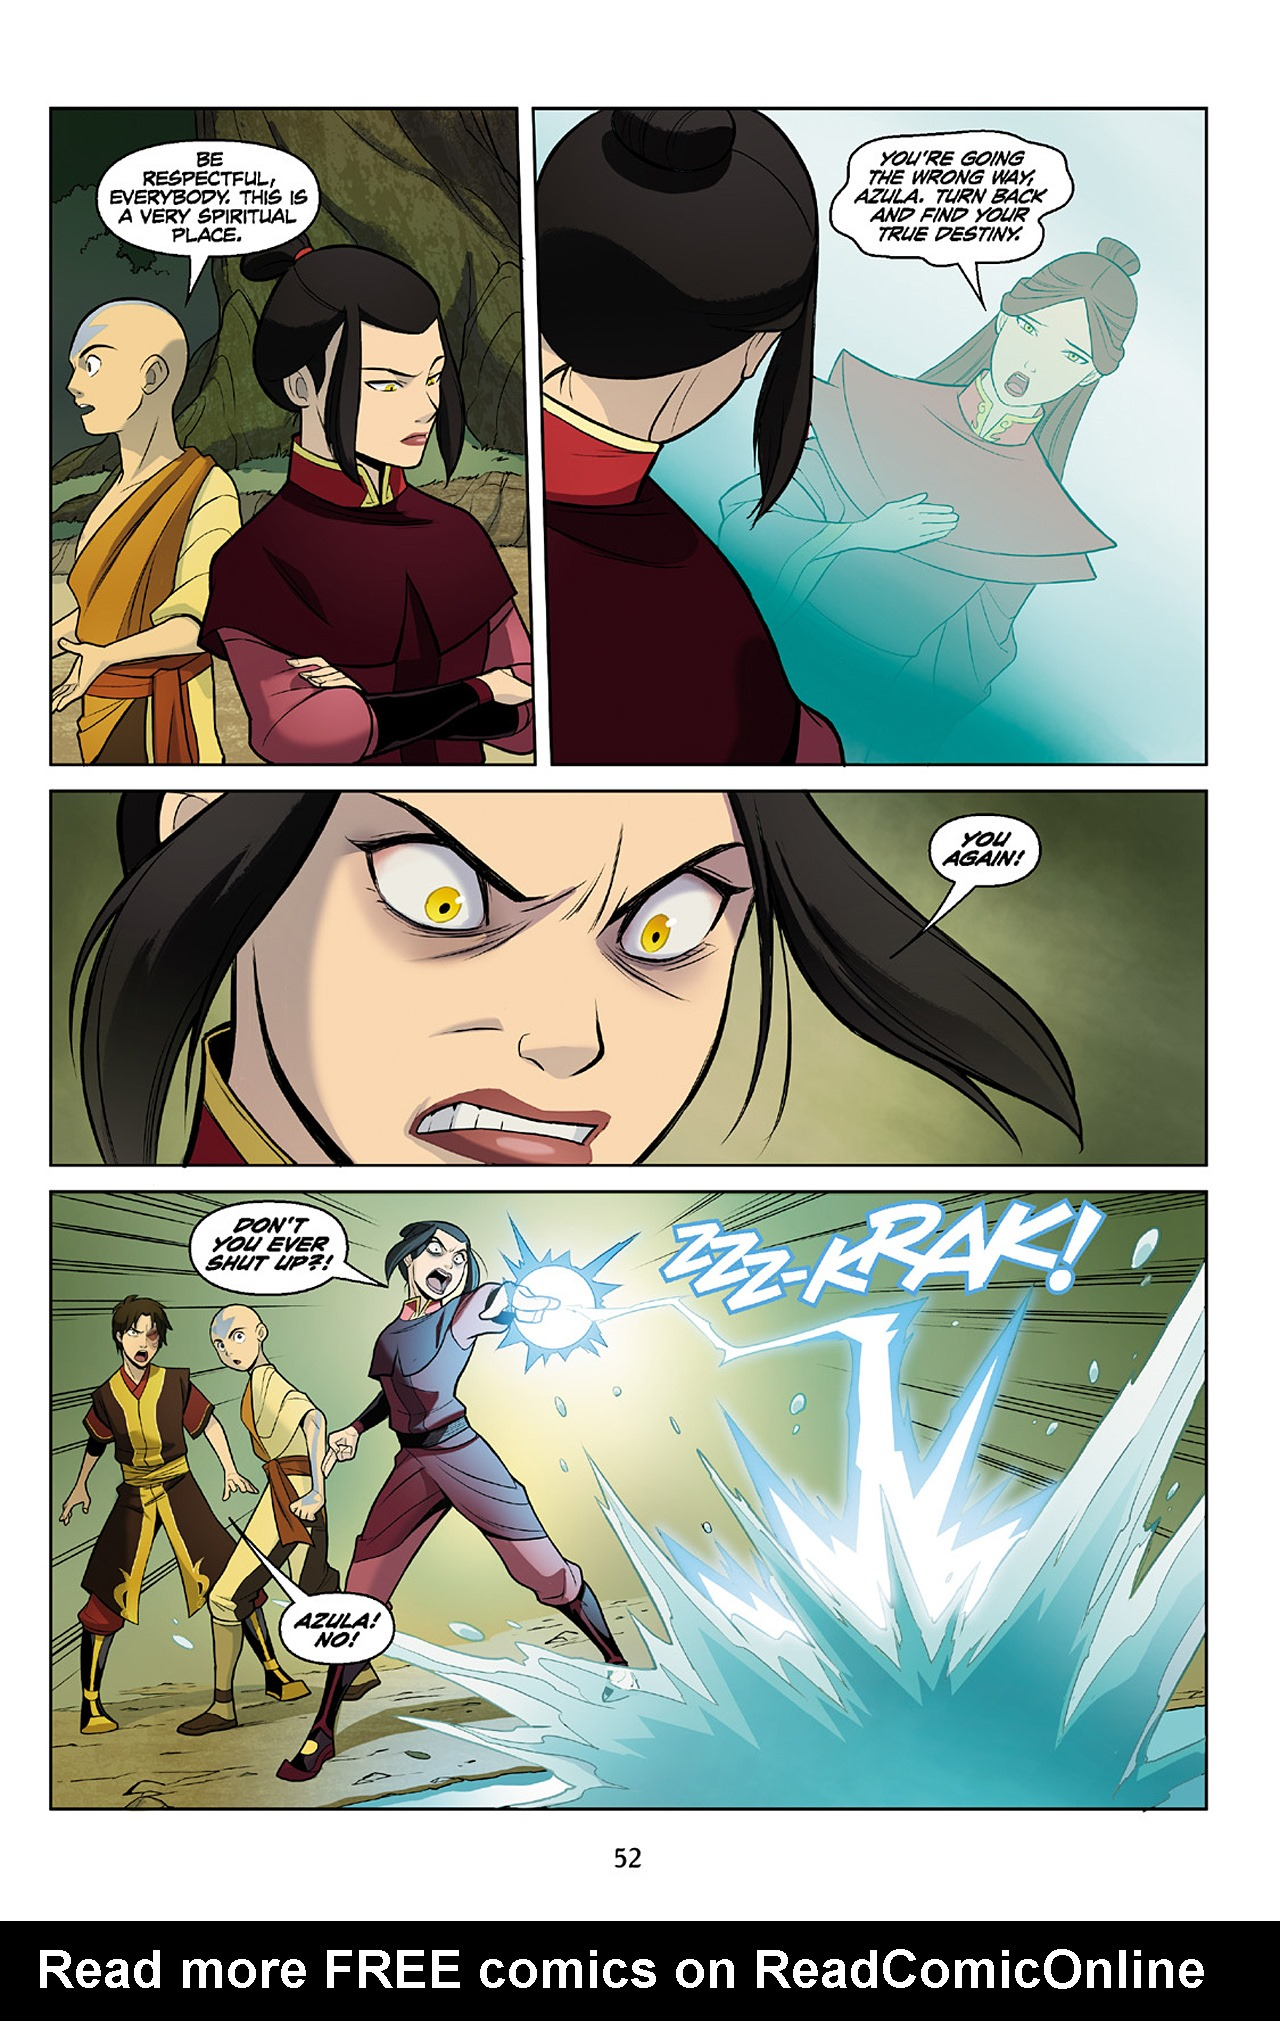 Read online Nickelodeon Avatar: The Last Airbender - The Search comic -  Issue # Part 2 - 53